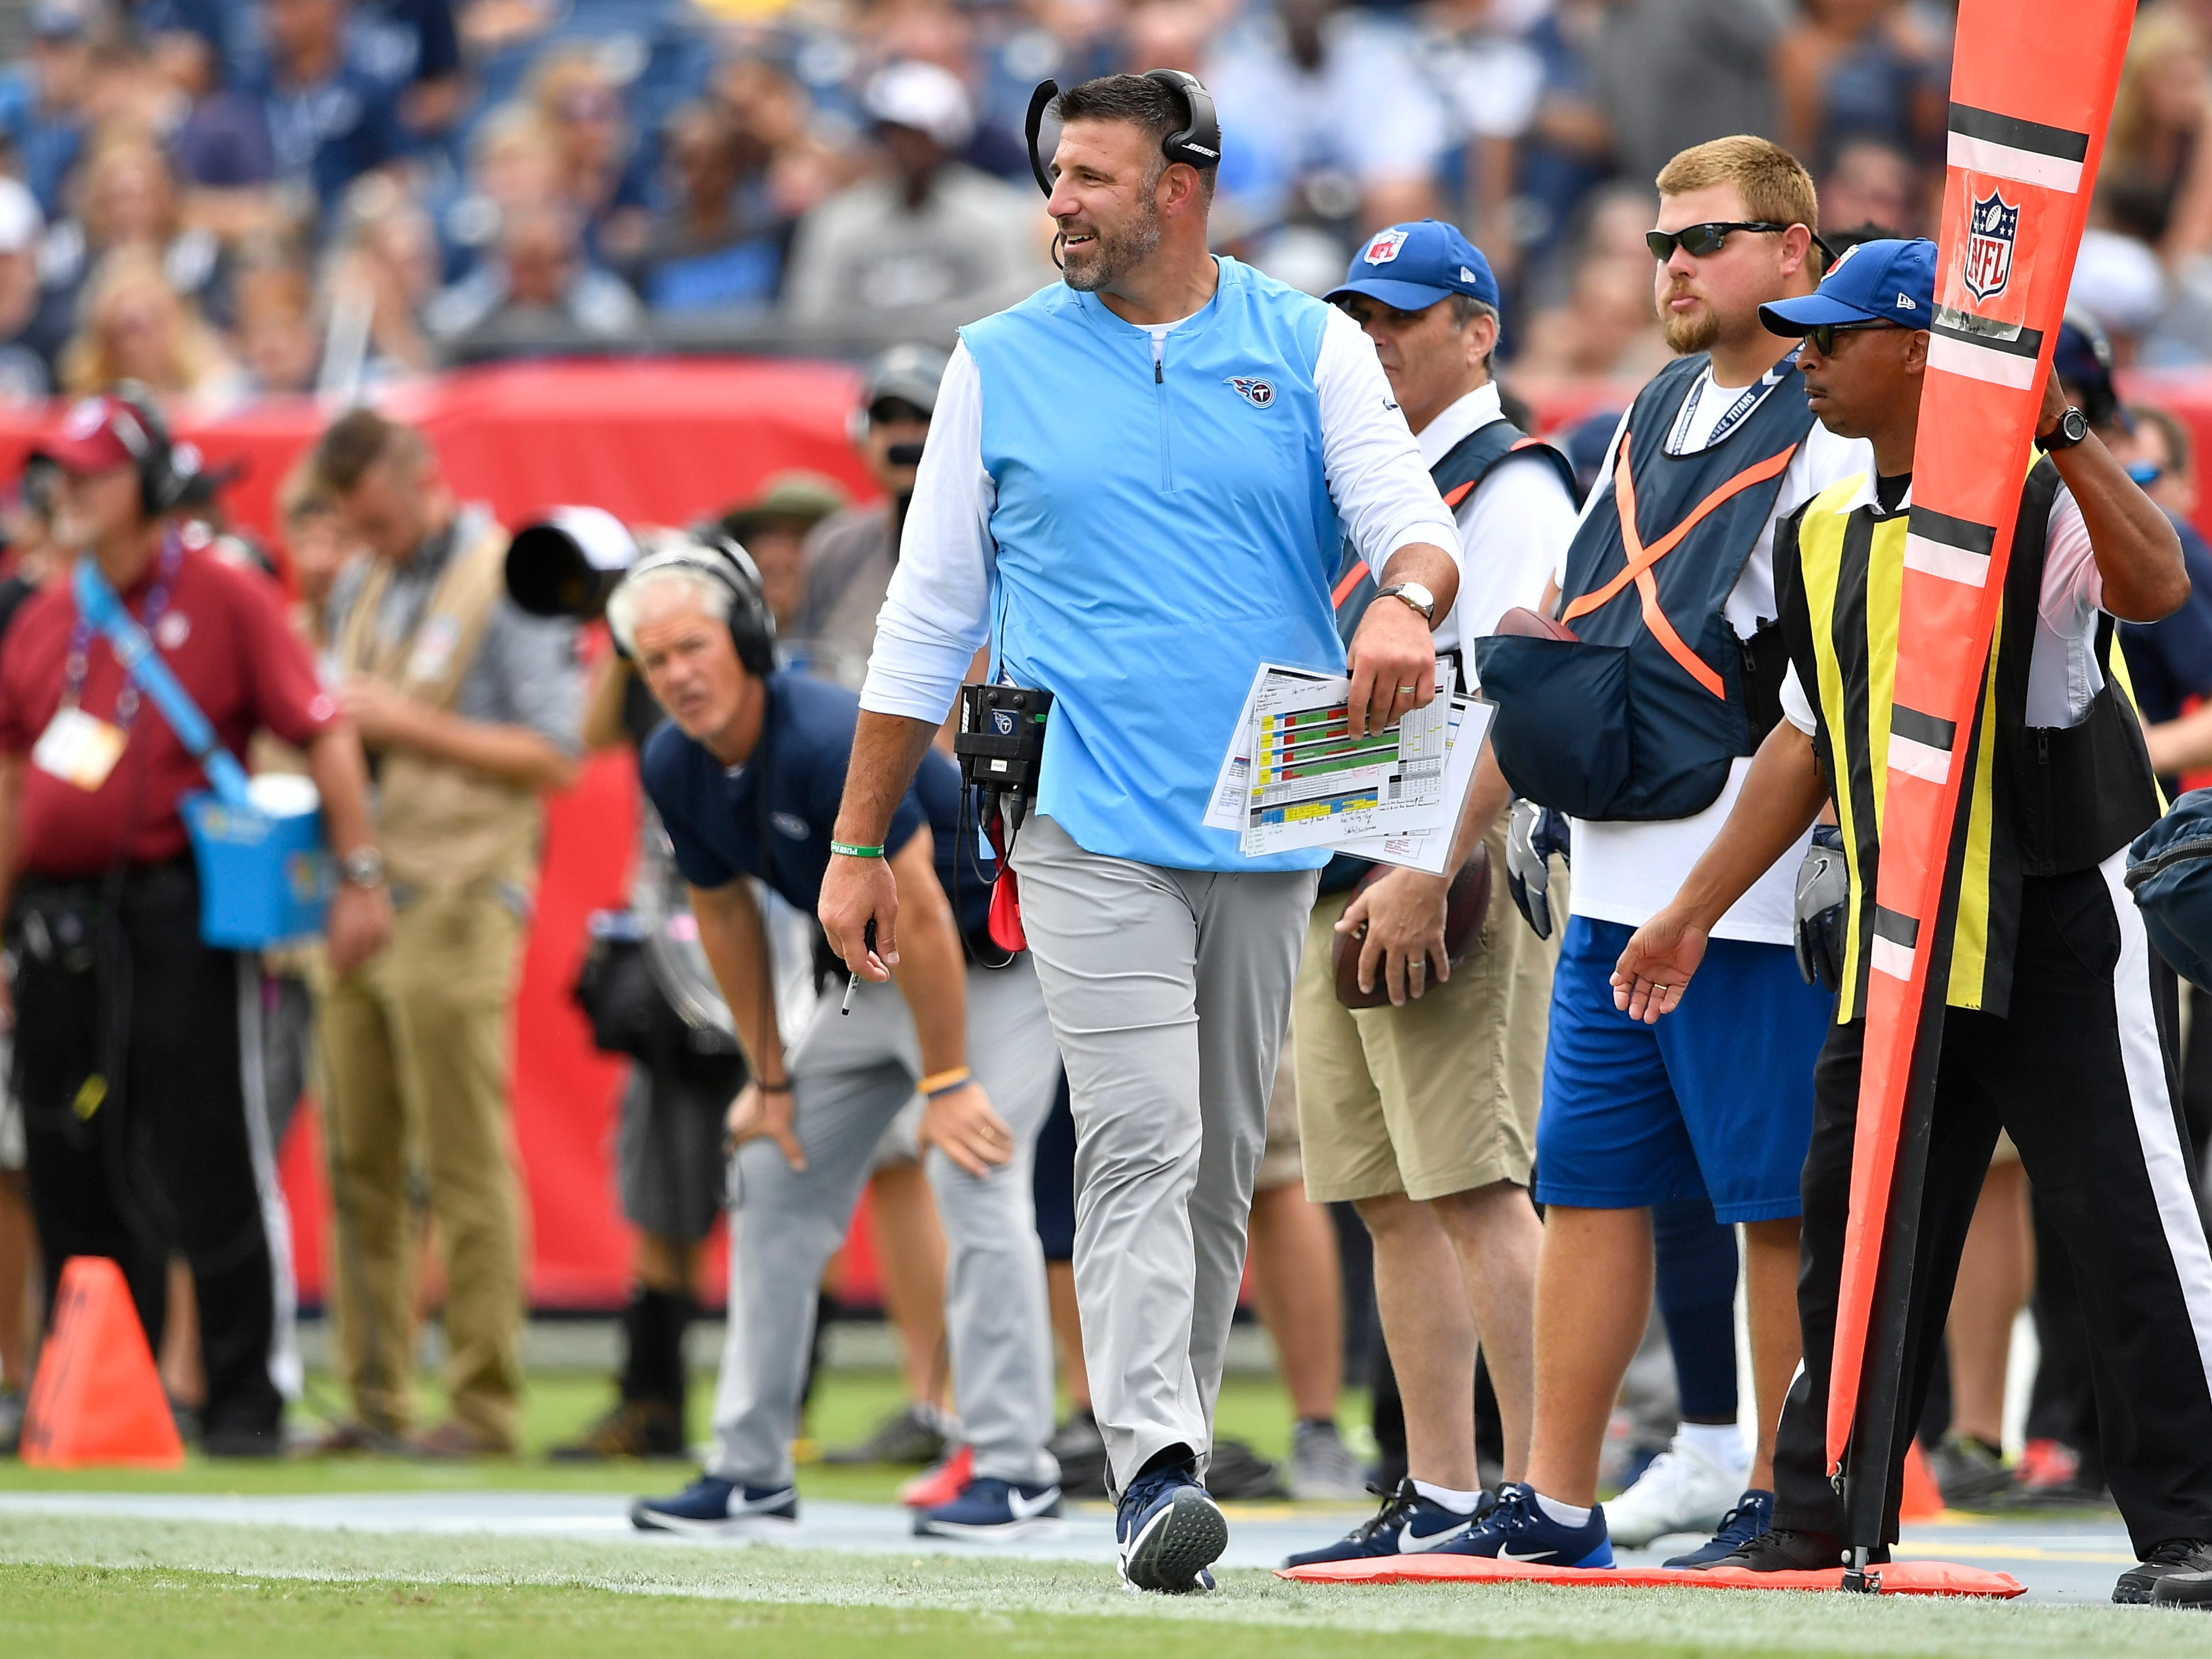 Titans head coach Mike Vrabel walks the sidelines in the second quarter at Nissan Stadium Sunday, Sept. 16, 2018, in Nashville, Tenn.